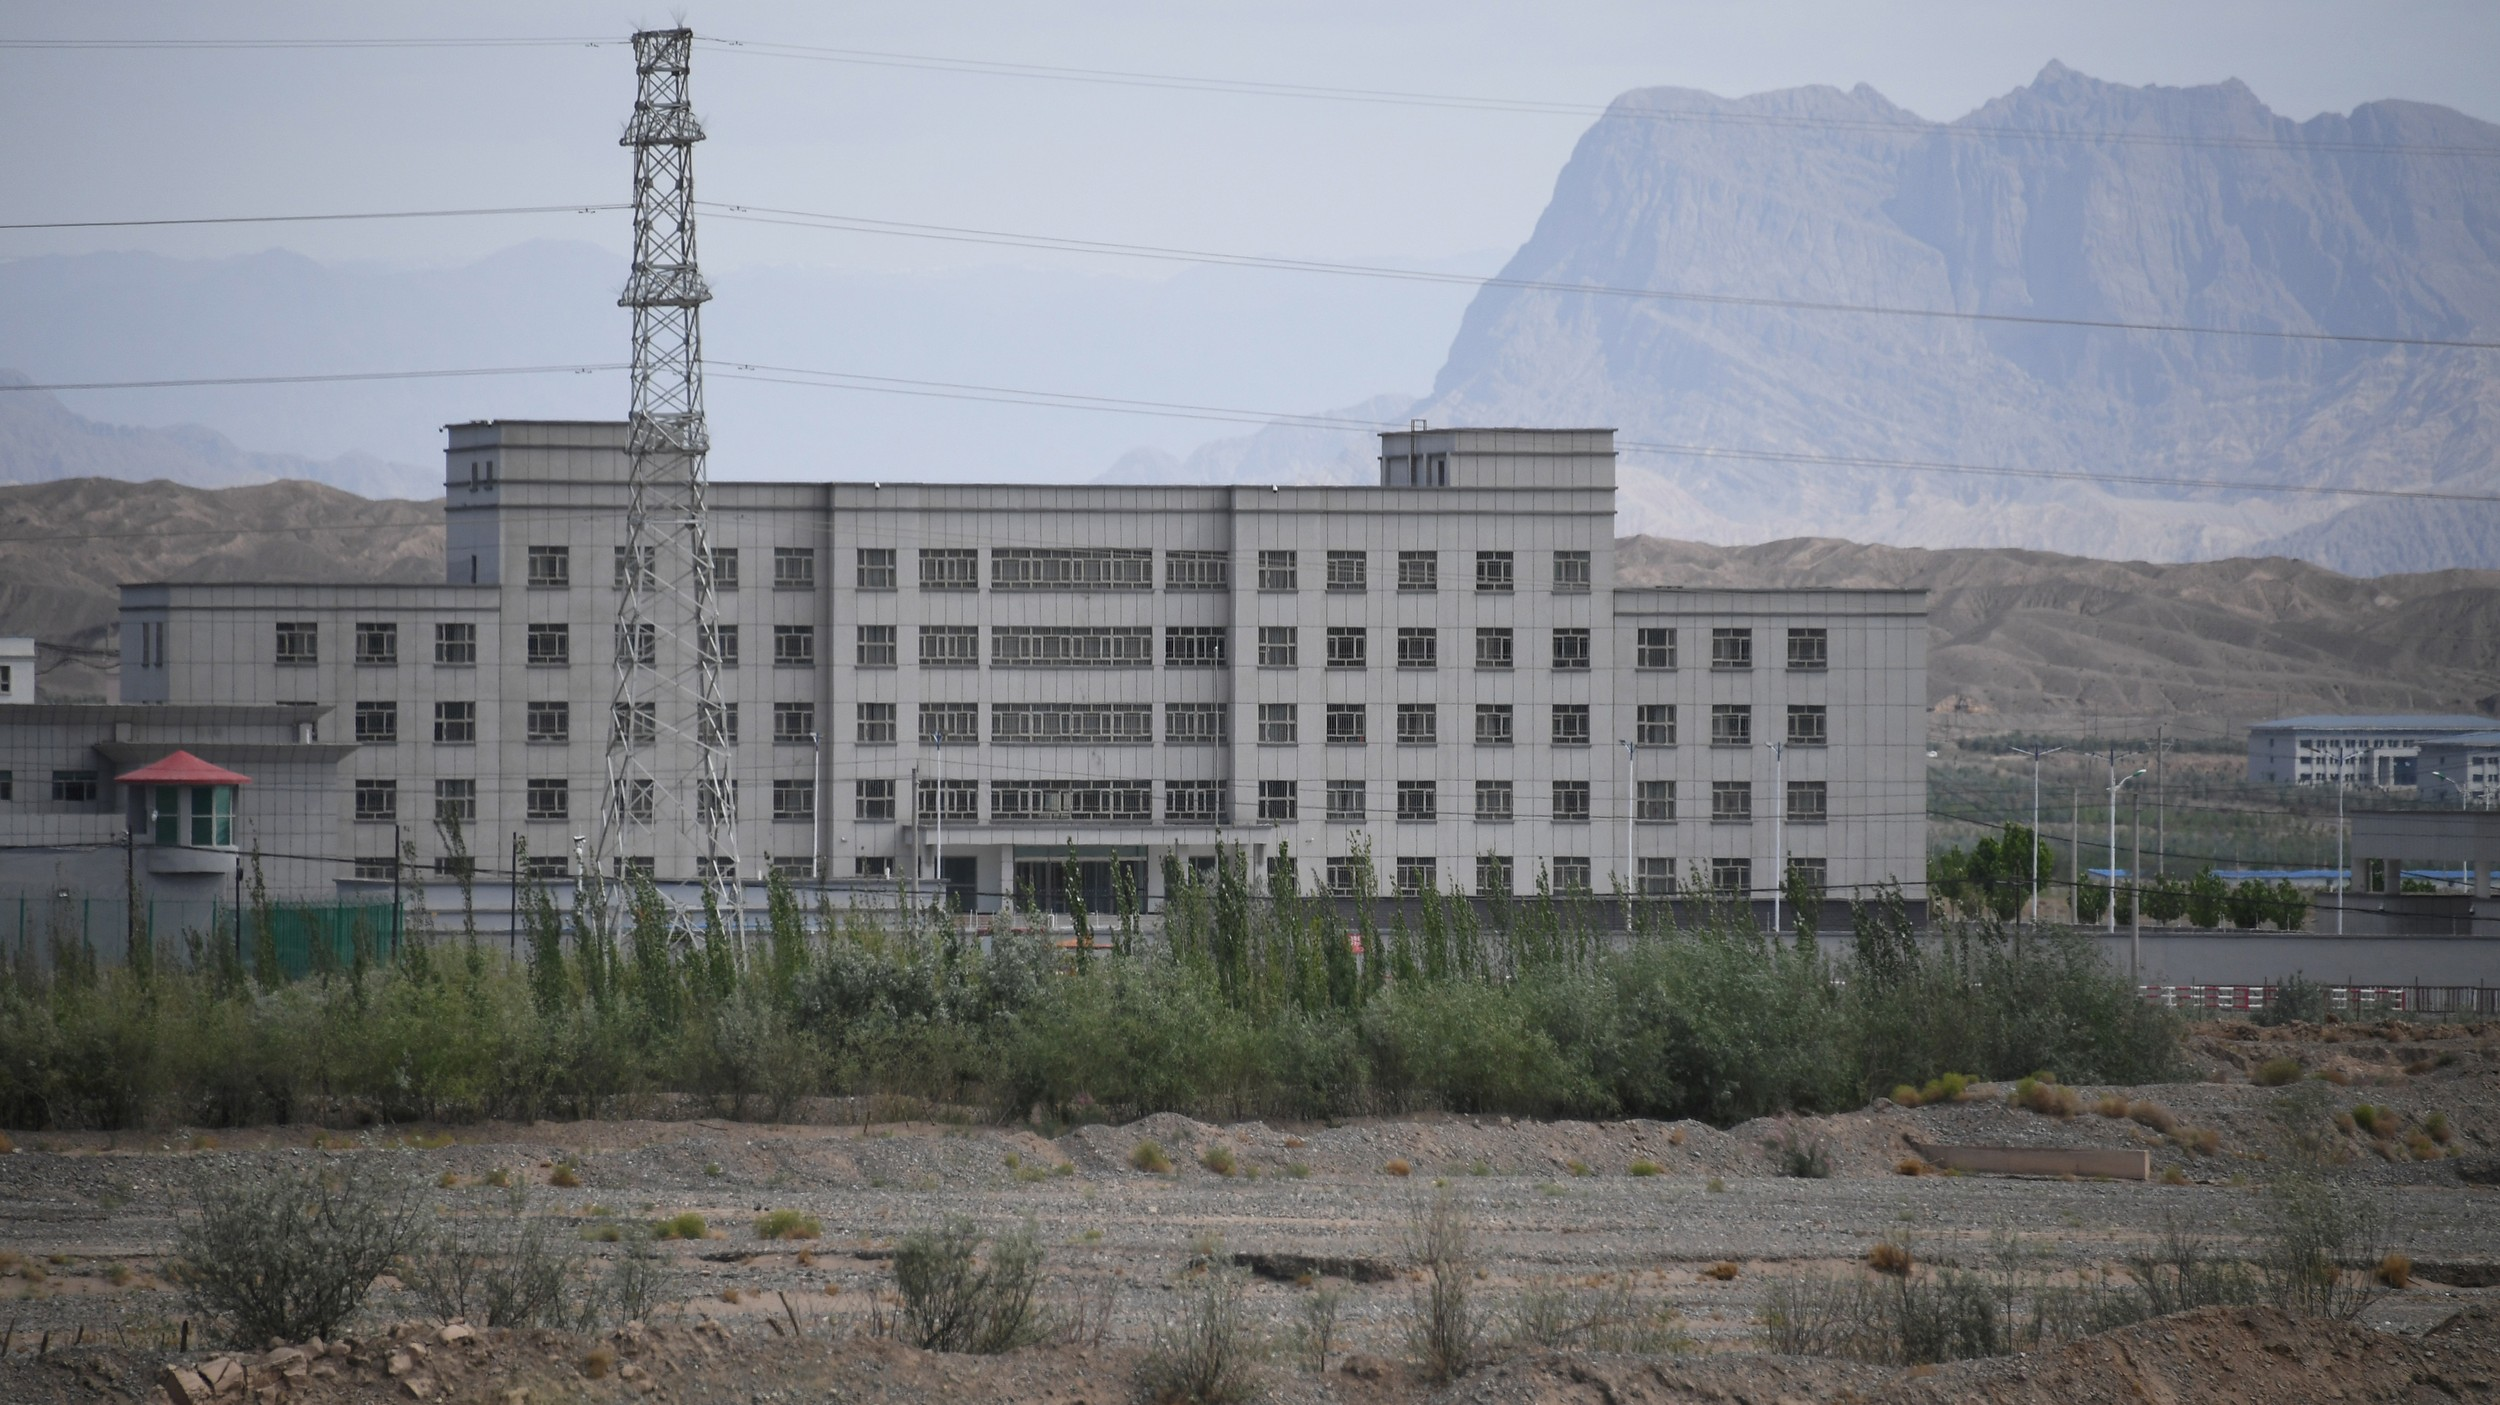 Key findings in secret documents on China's detention camps